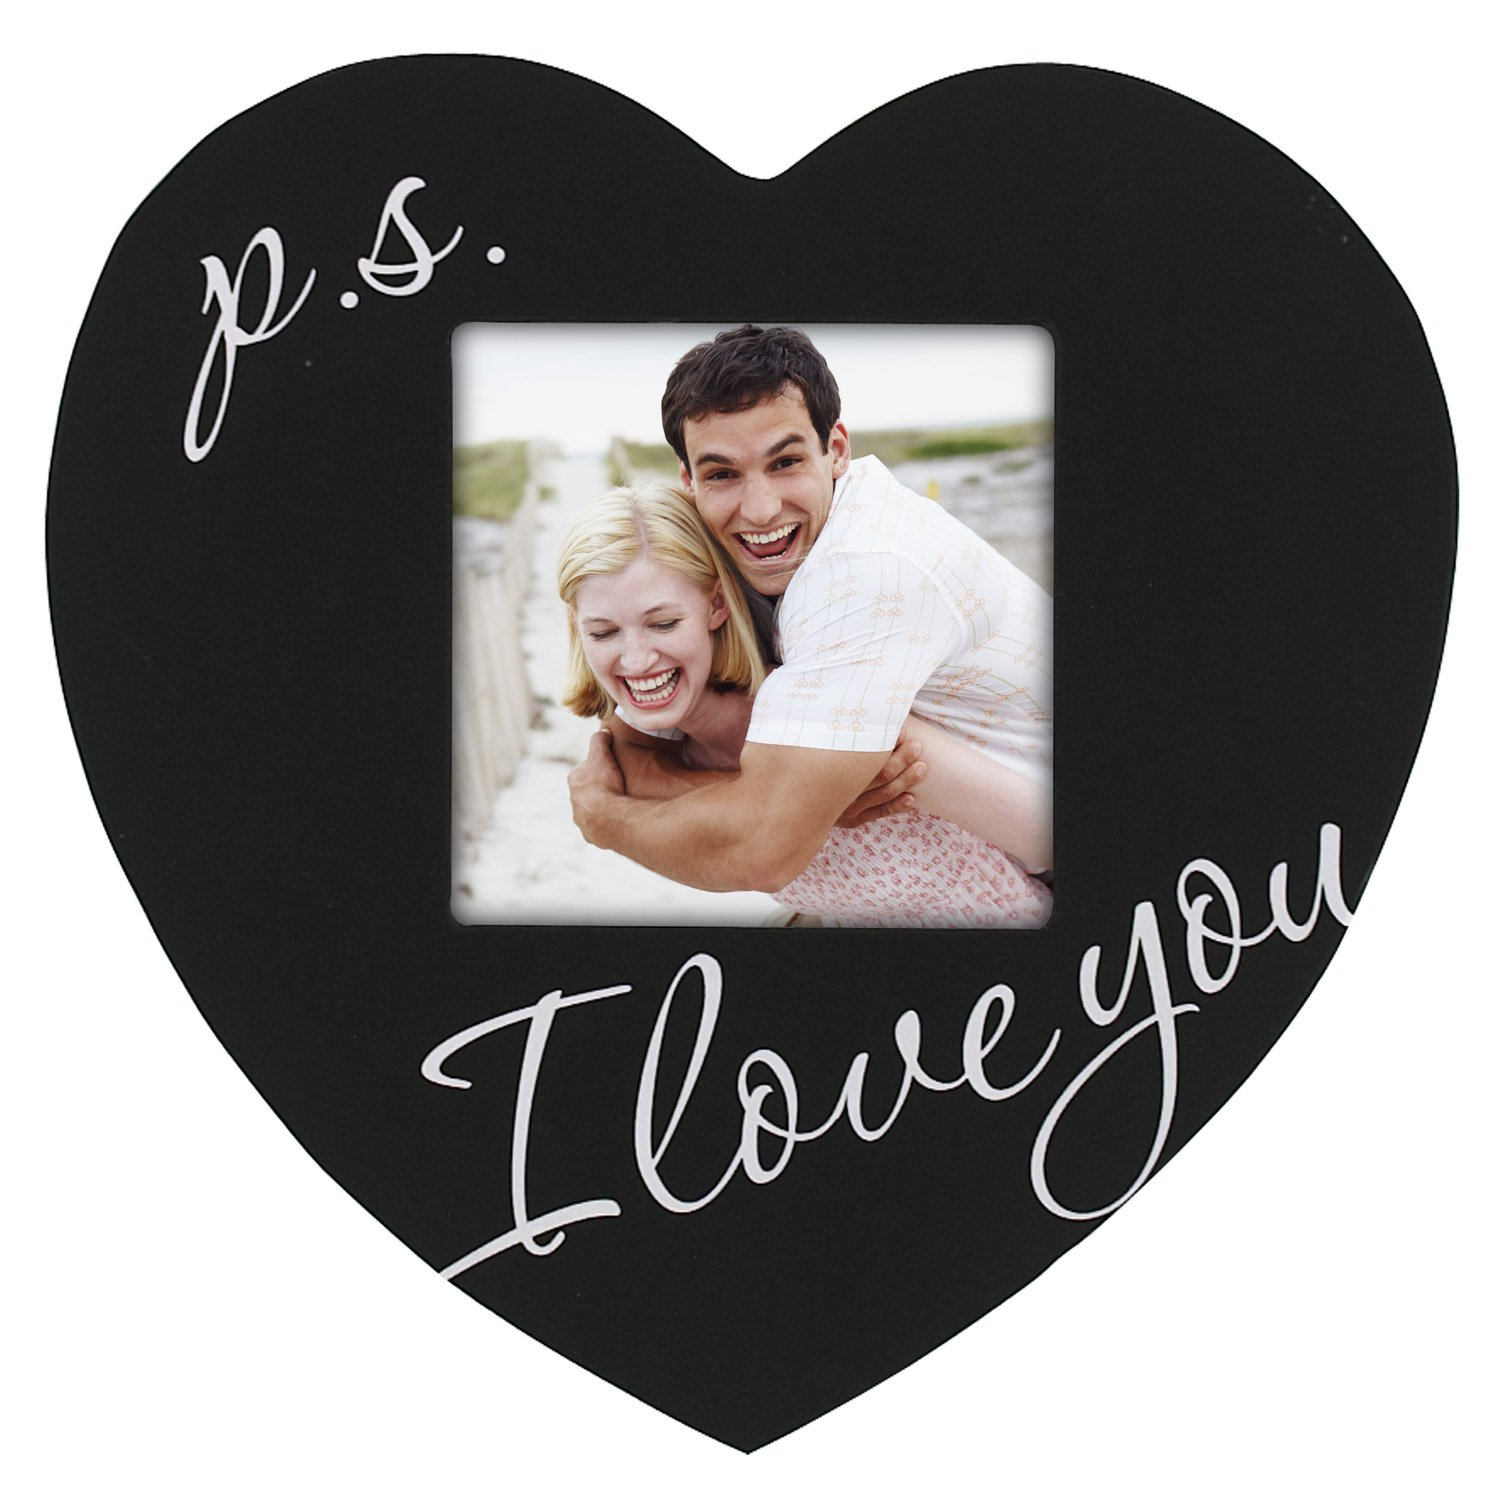 Malden Celebrated Moments Black Wood Heart Picture Frame, P.S. I Love You, 3.5 by 3.5-Inch – Ps I Love You Picture Frame